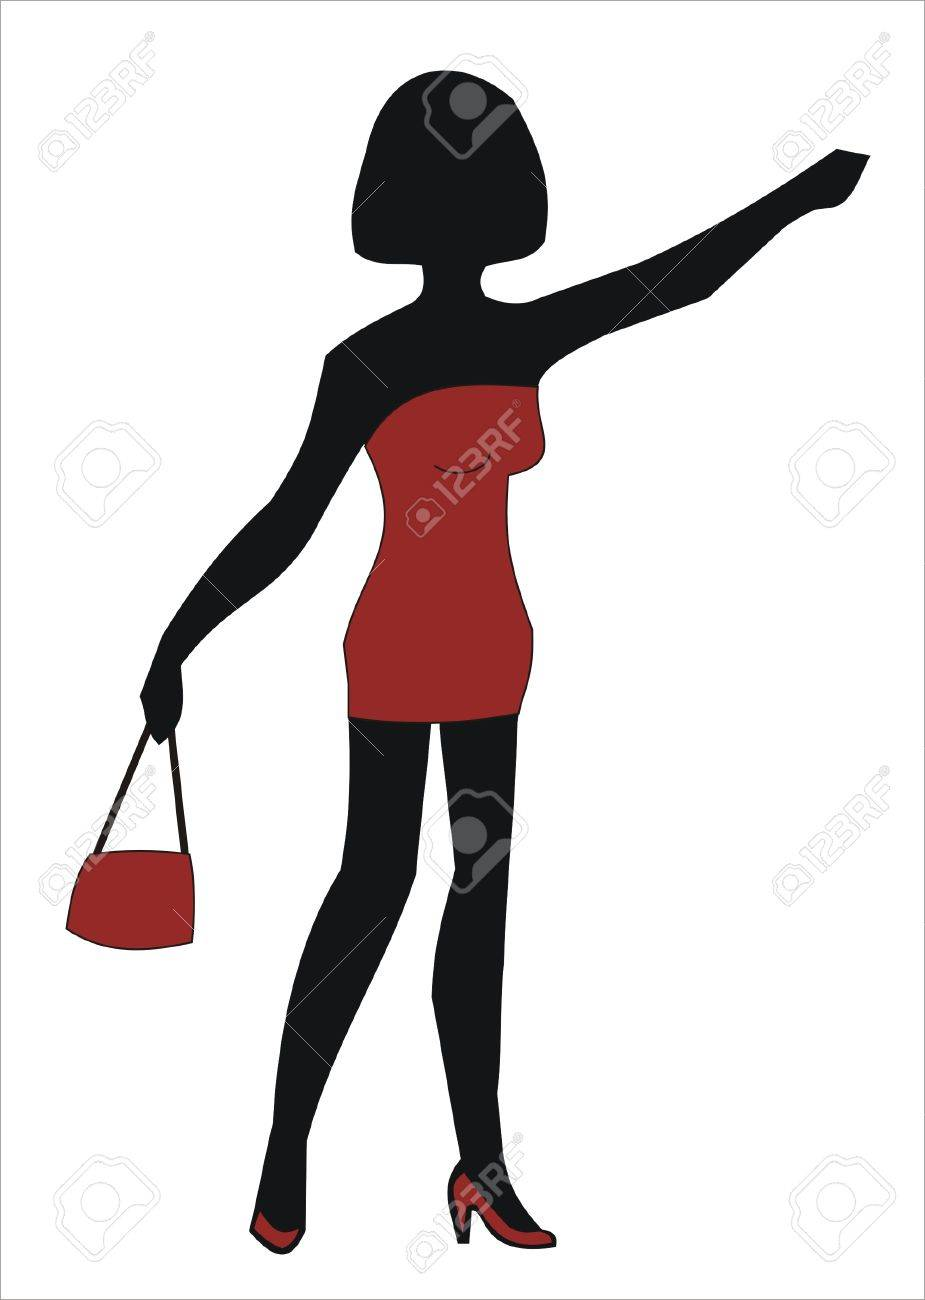 prostitute in a red dress with red bag.